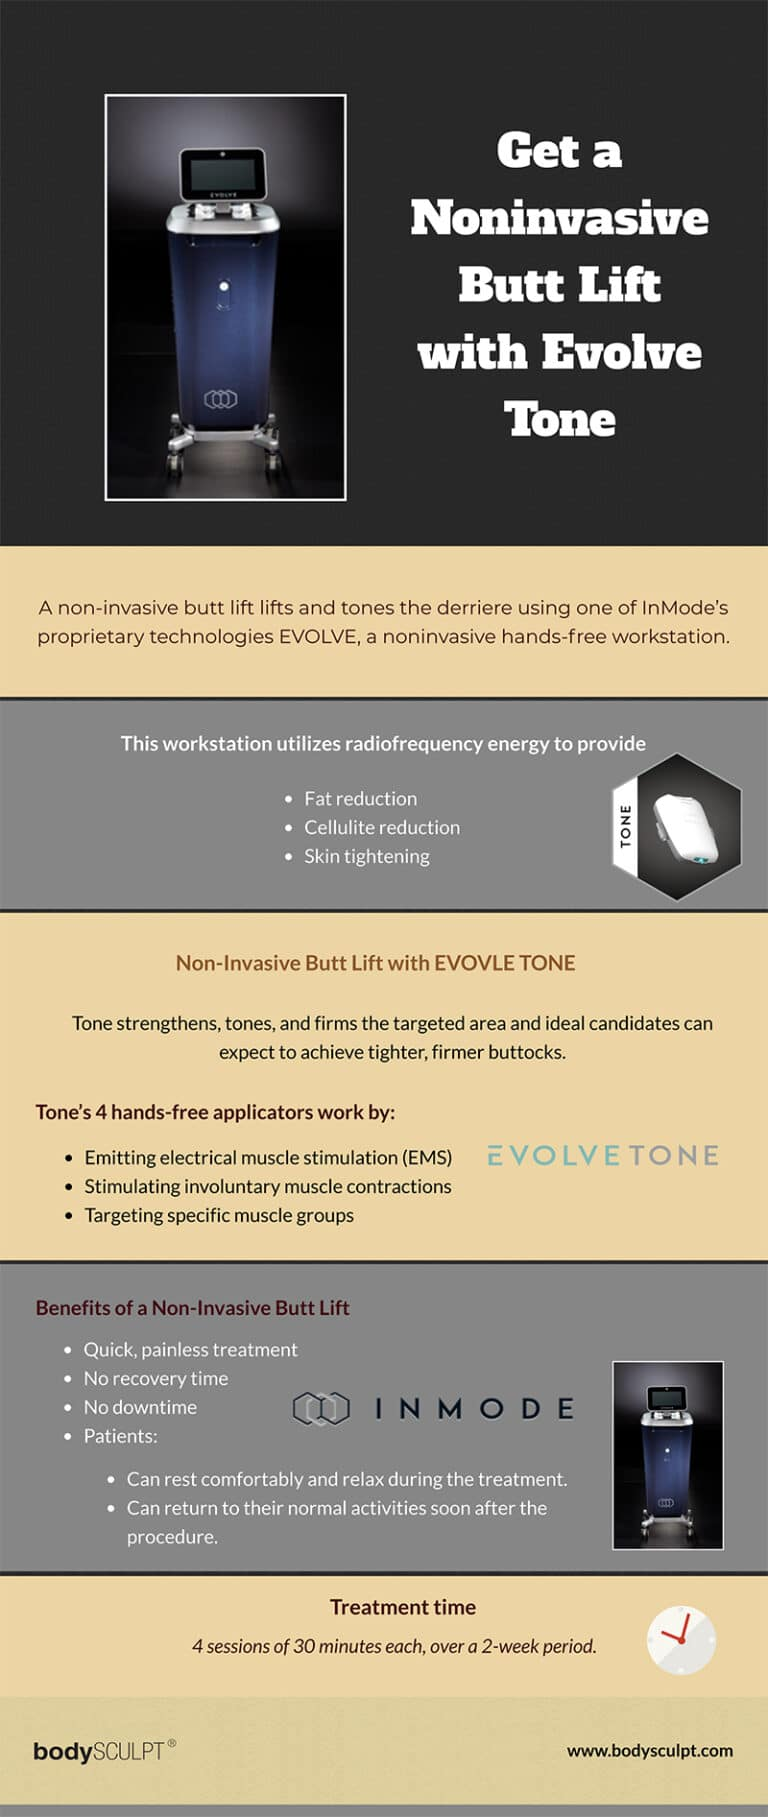 Get a Noninvasive Butt Lift with Evolve Tone [Infographic]